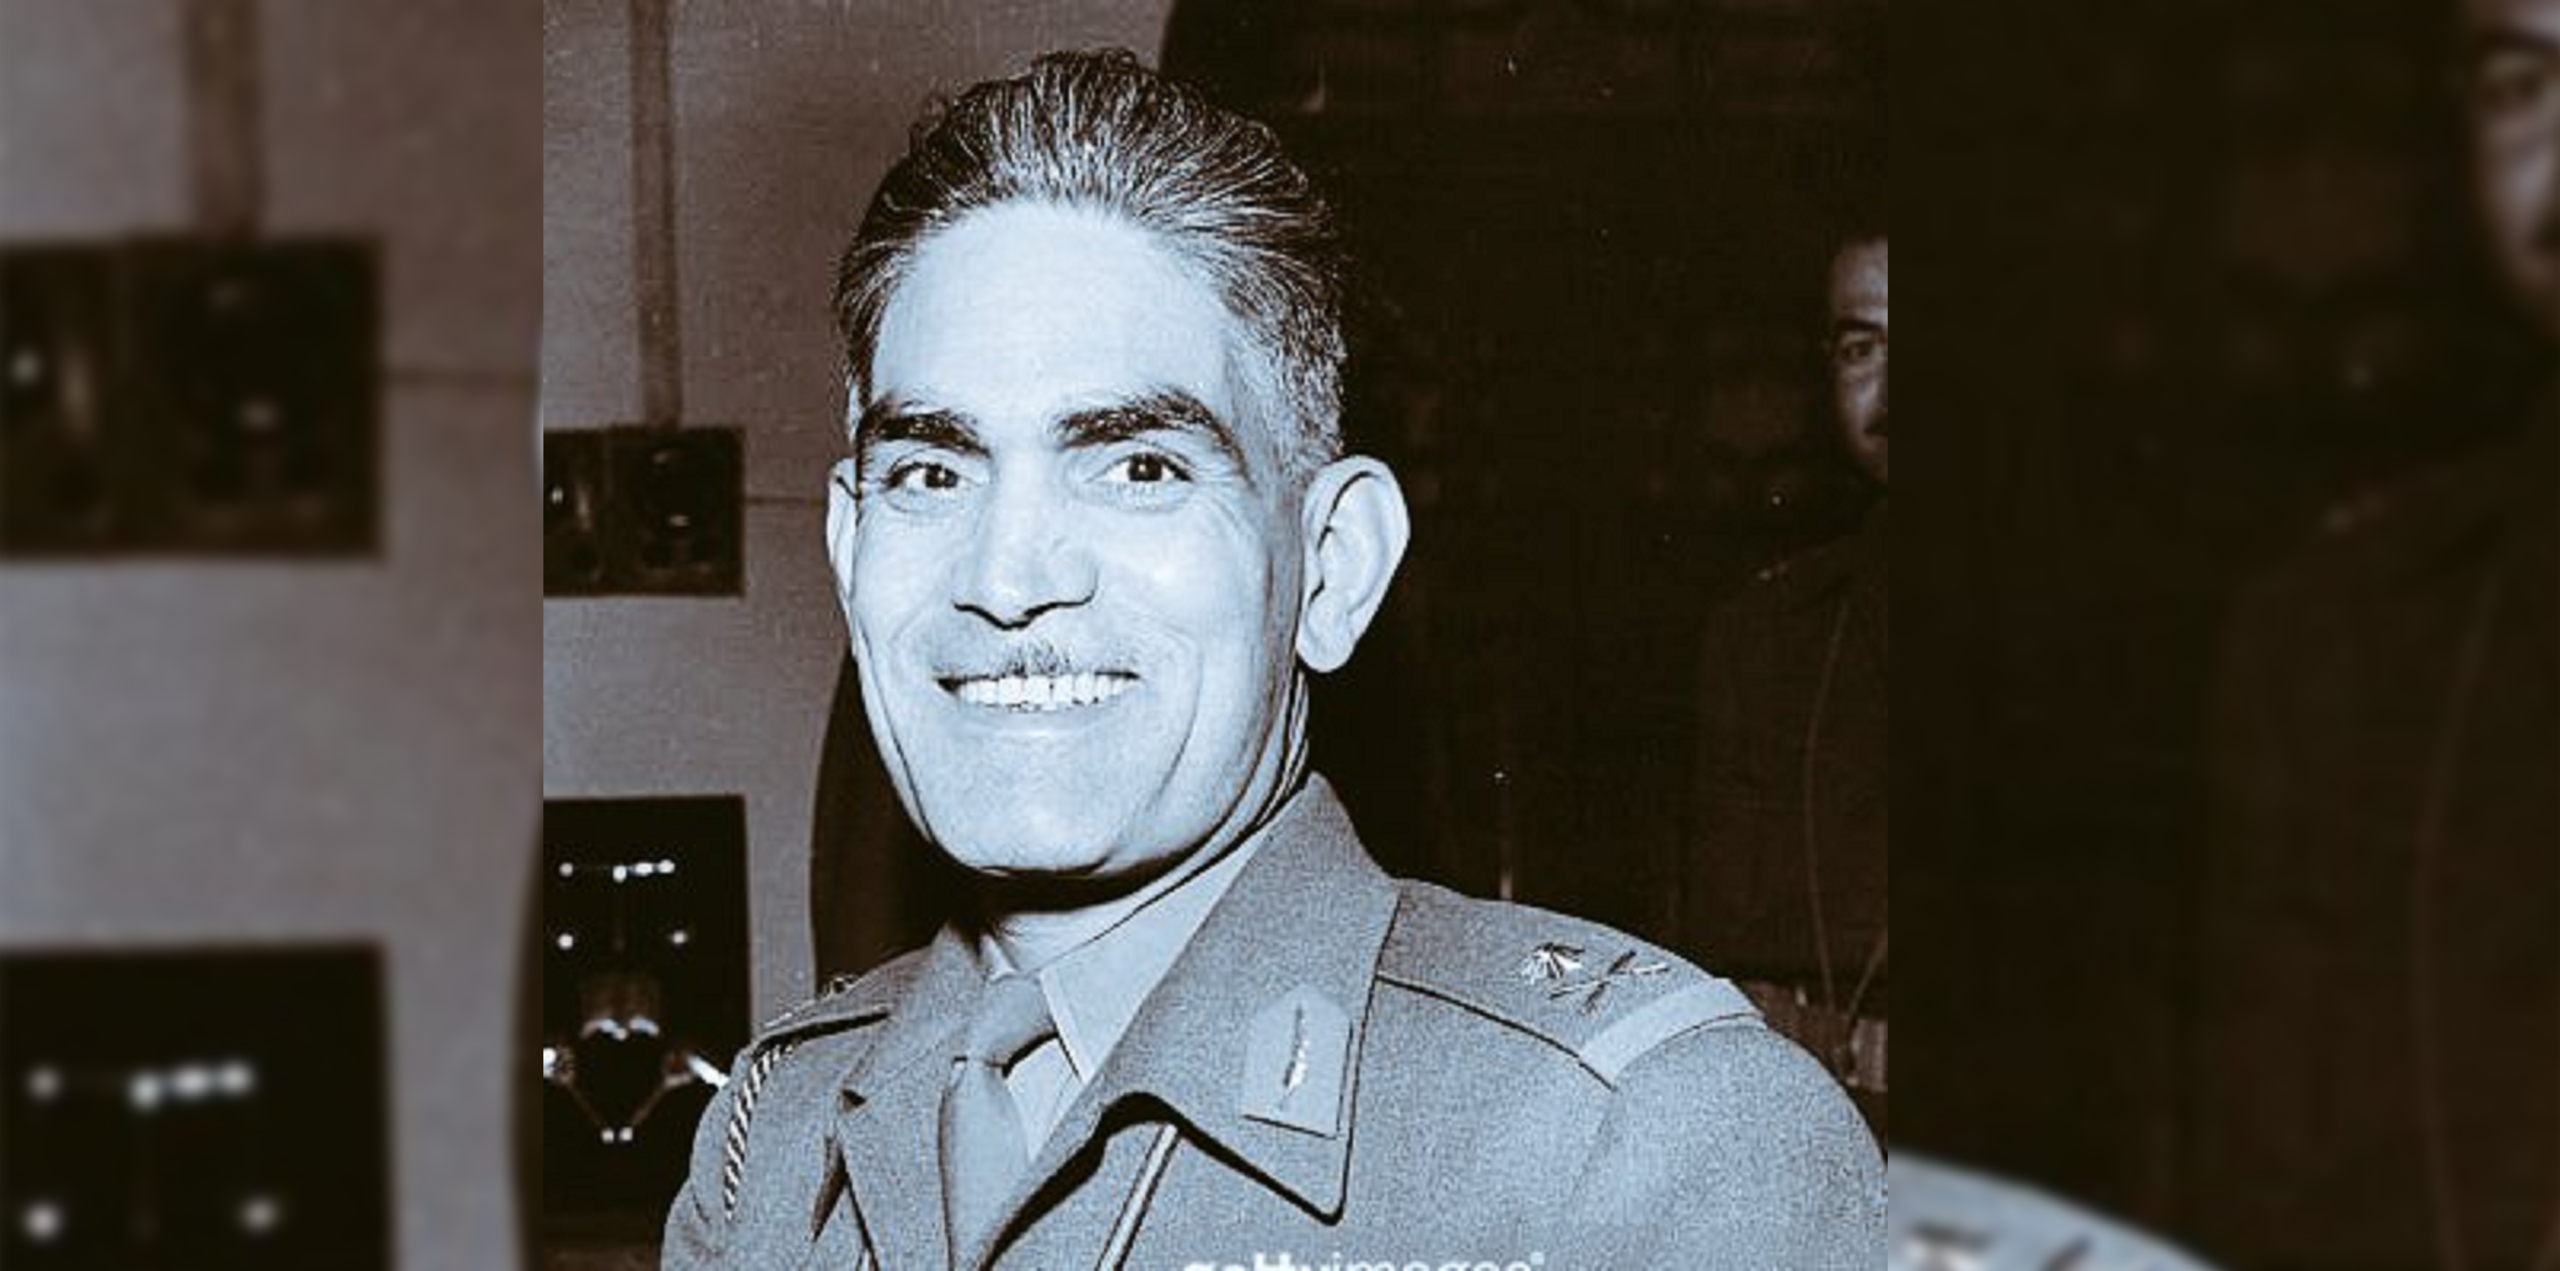 Col. Abd al-Karim Qasim, who launched the 1958 coup. (Twitter, @mometov)